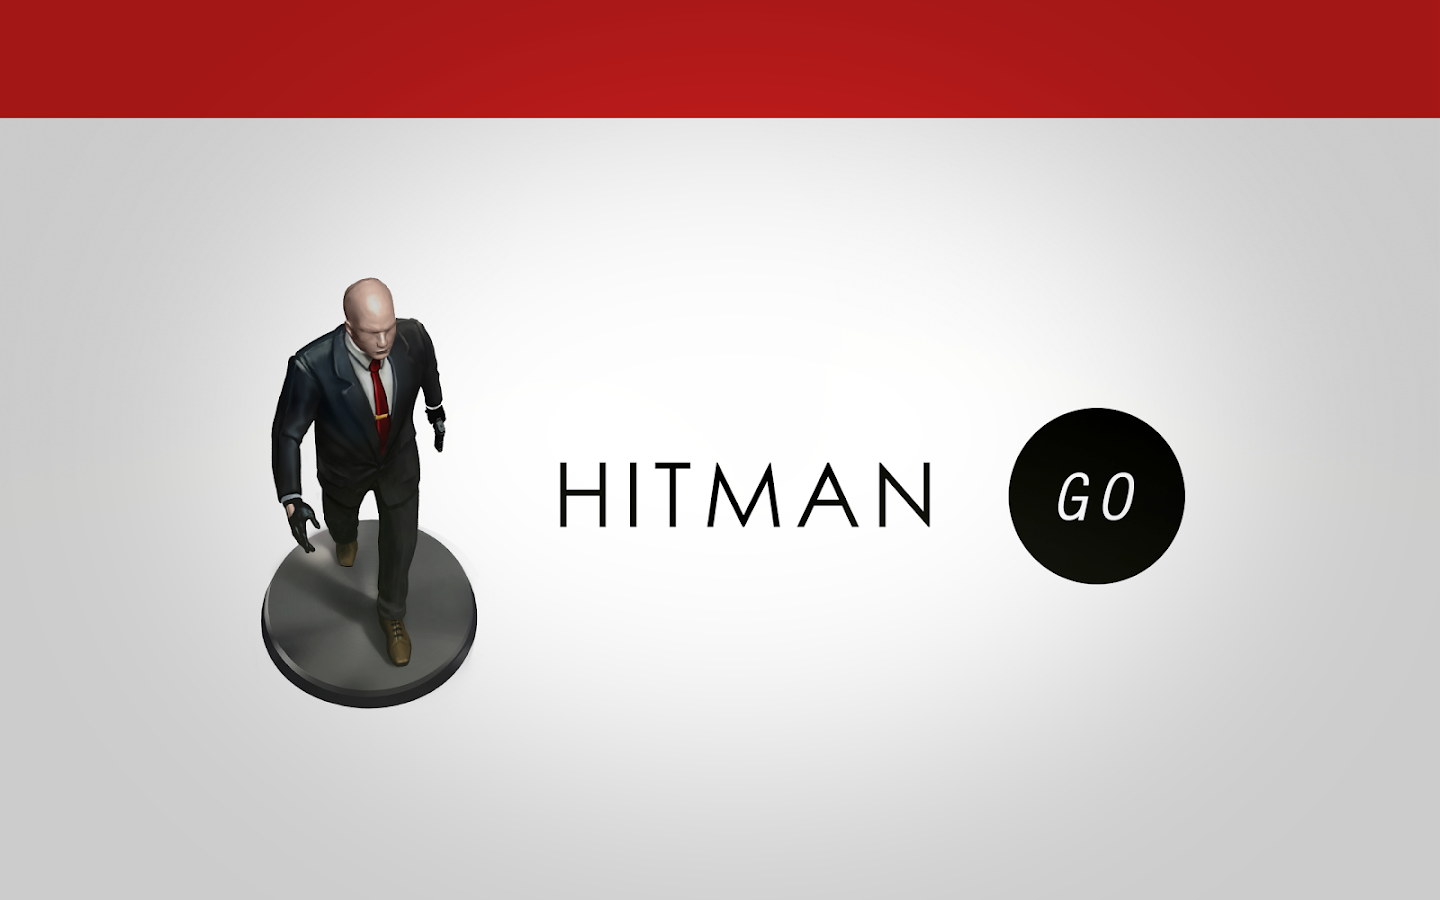 Hitman GO Screenshot 5